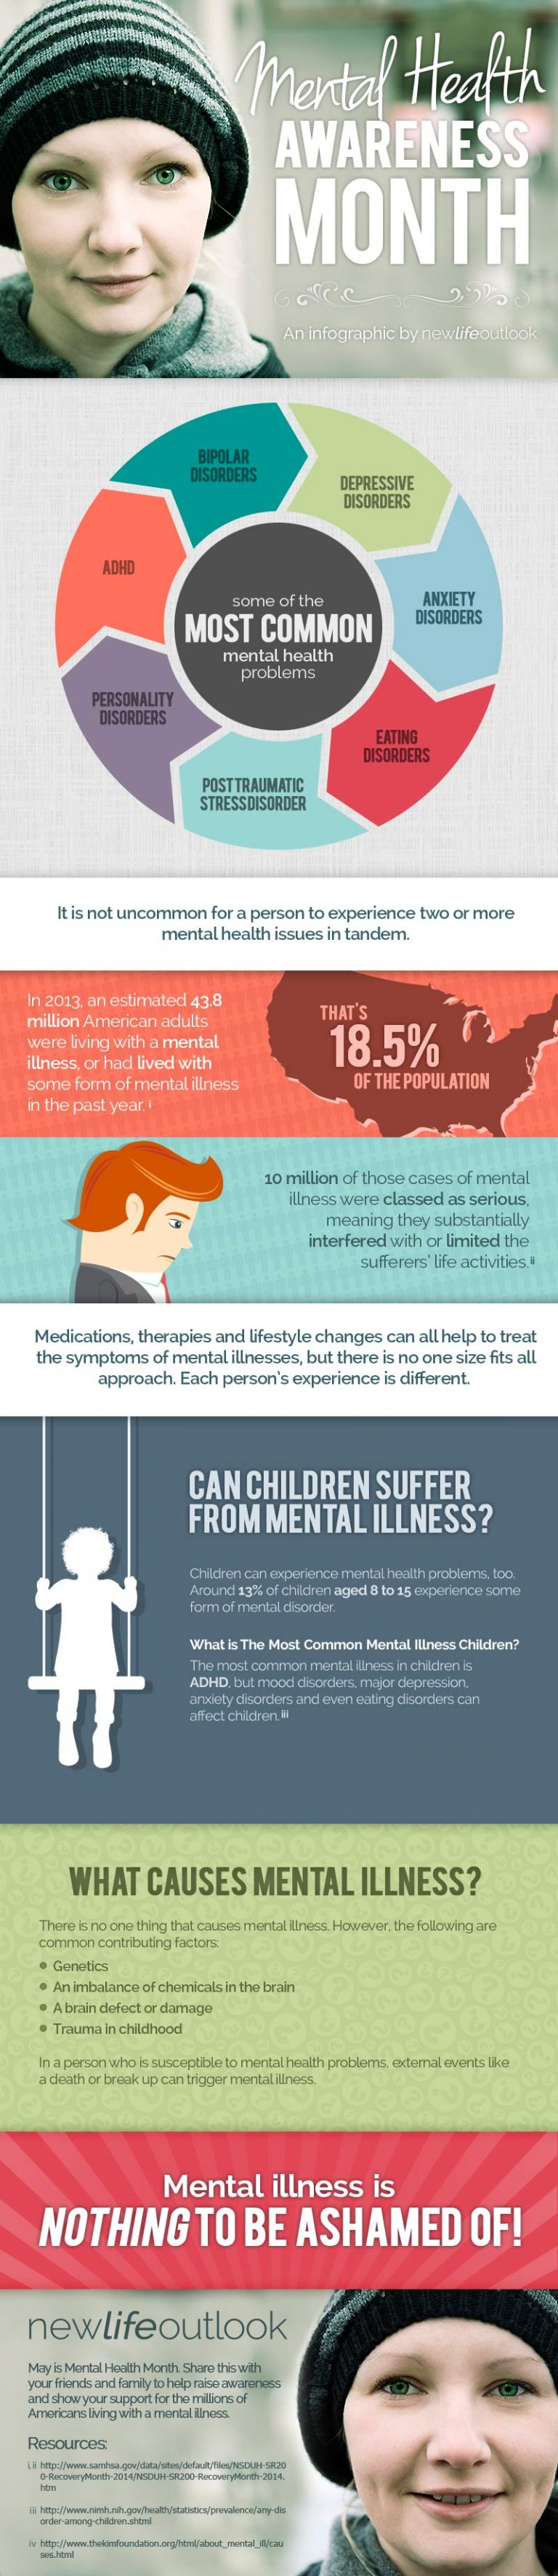 the issue of depression a mental disorder Volume 2, issue 14 october 2013 mental health and depressive disorders affect many people in illinois in various aspects of their lives psychological problems associated with mental health.